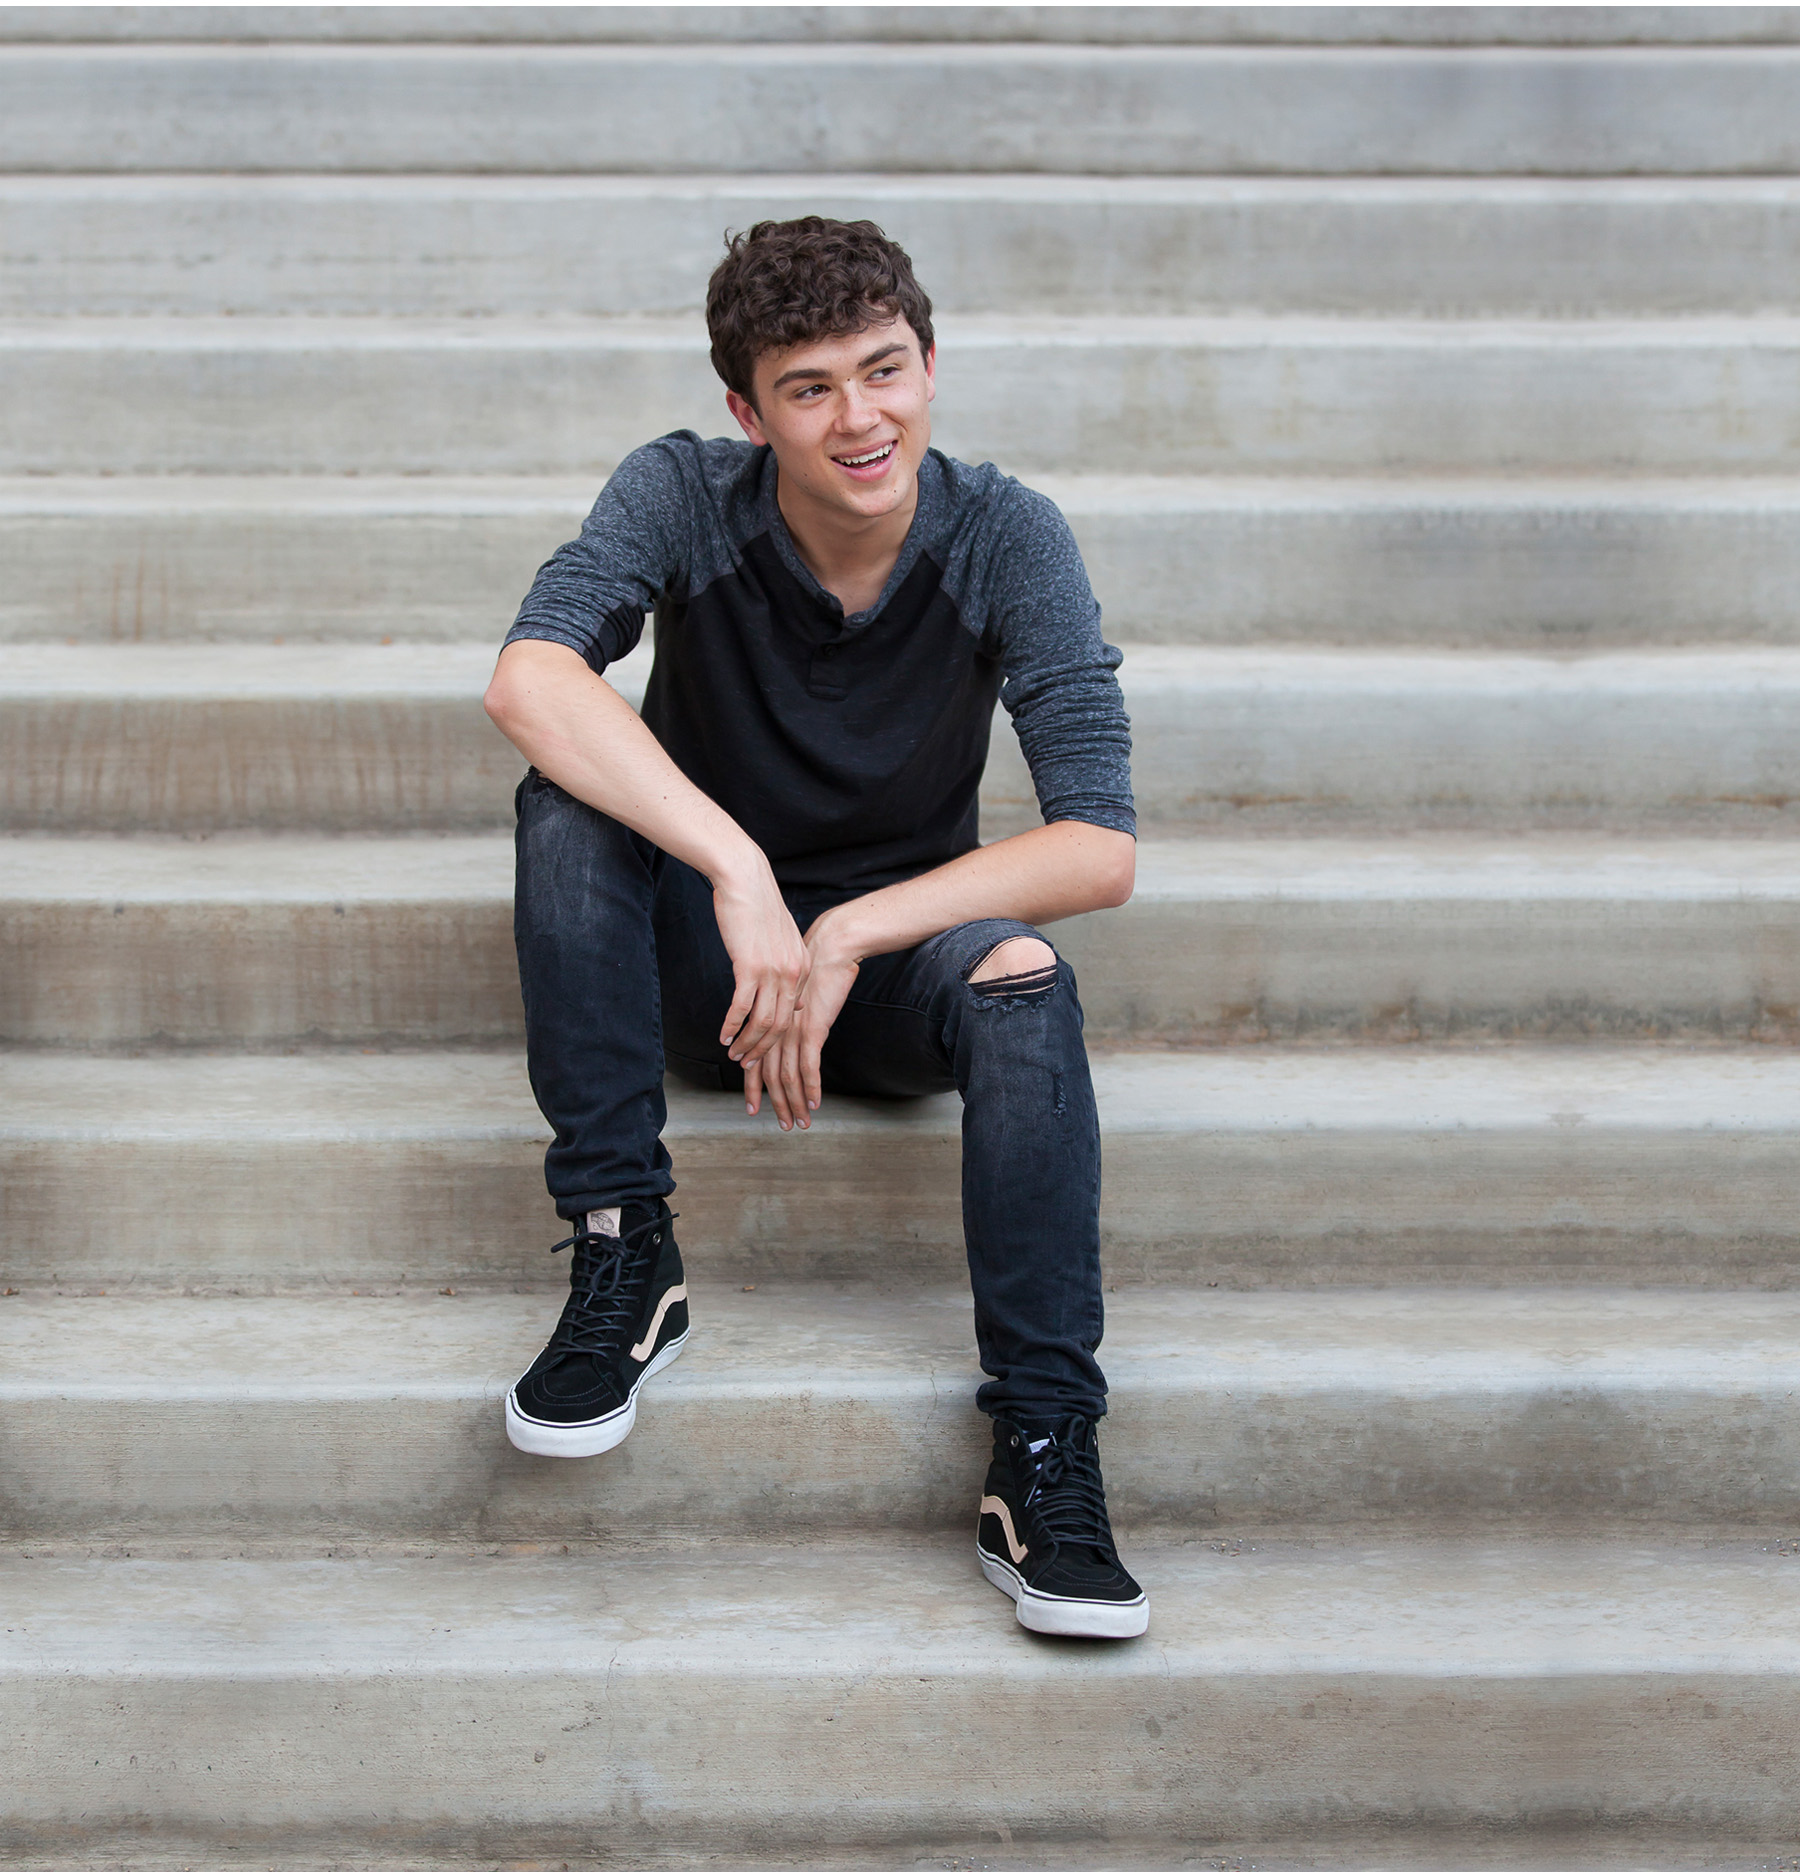 Casual urban Senior Pictures on stairs with Denver photographer Jennifer Koskinen, Merritt Portrait Studio